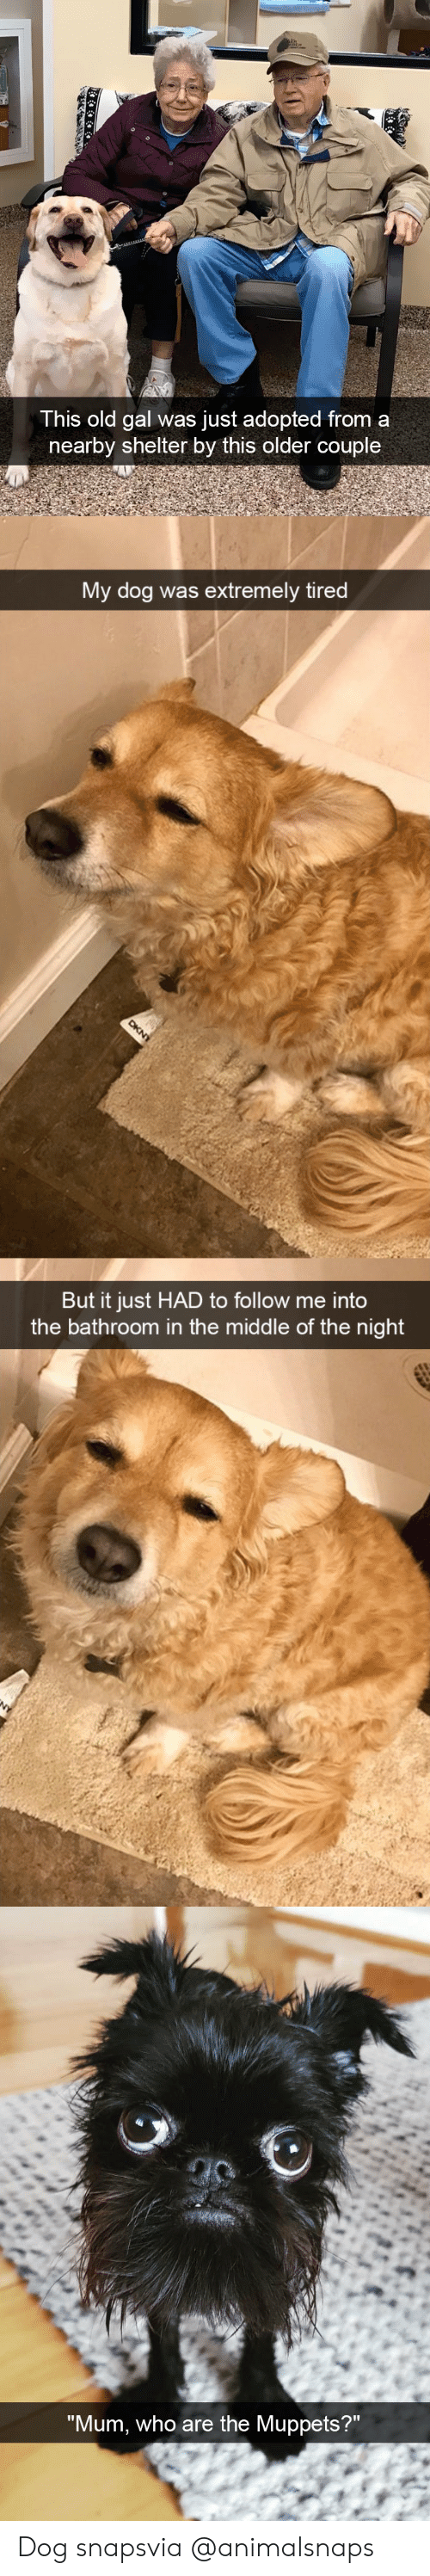 """The Muppets, Target, and Tumblr: This old gal was just adopted from a  nearby shelter by this older couple   My dog was extremely tired  But it just HAD to follow me into  the bathroom in the middle of the night   """"Mum, who are the Muppets?"""" Dog snapsvia @animalsnaps"""